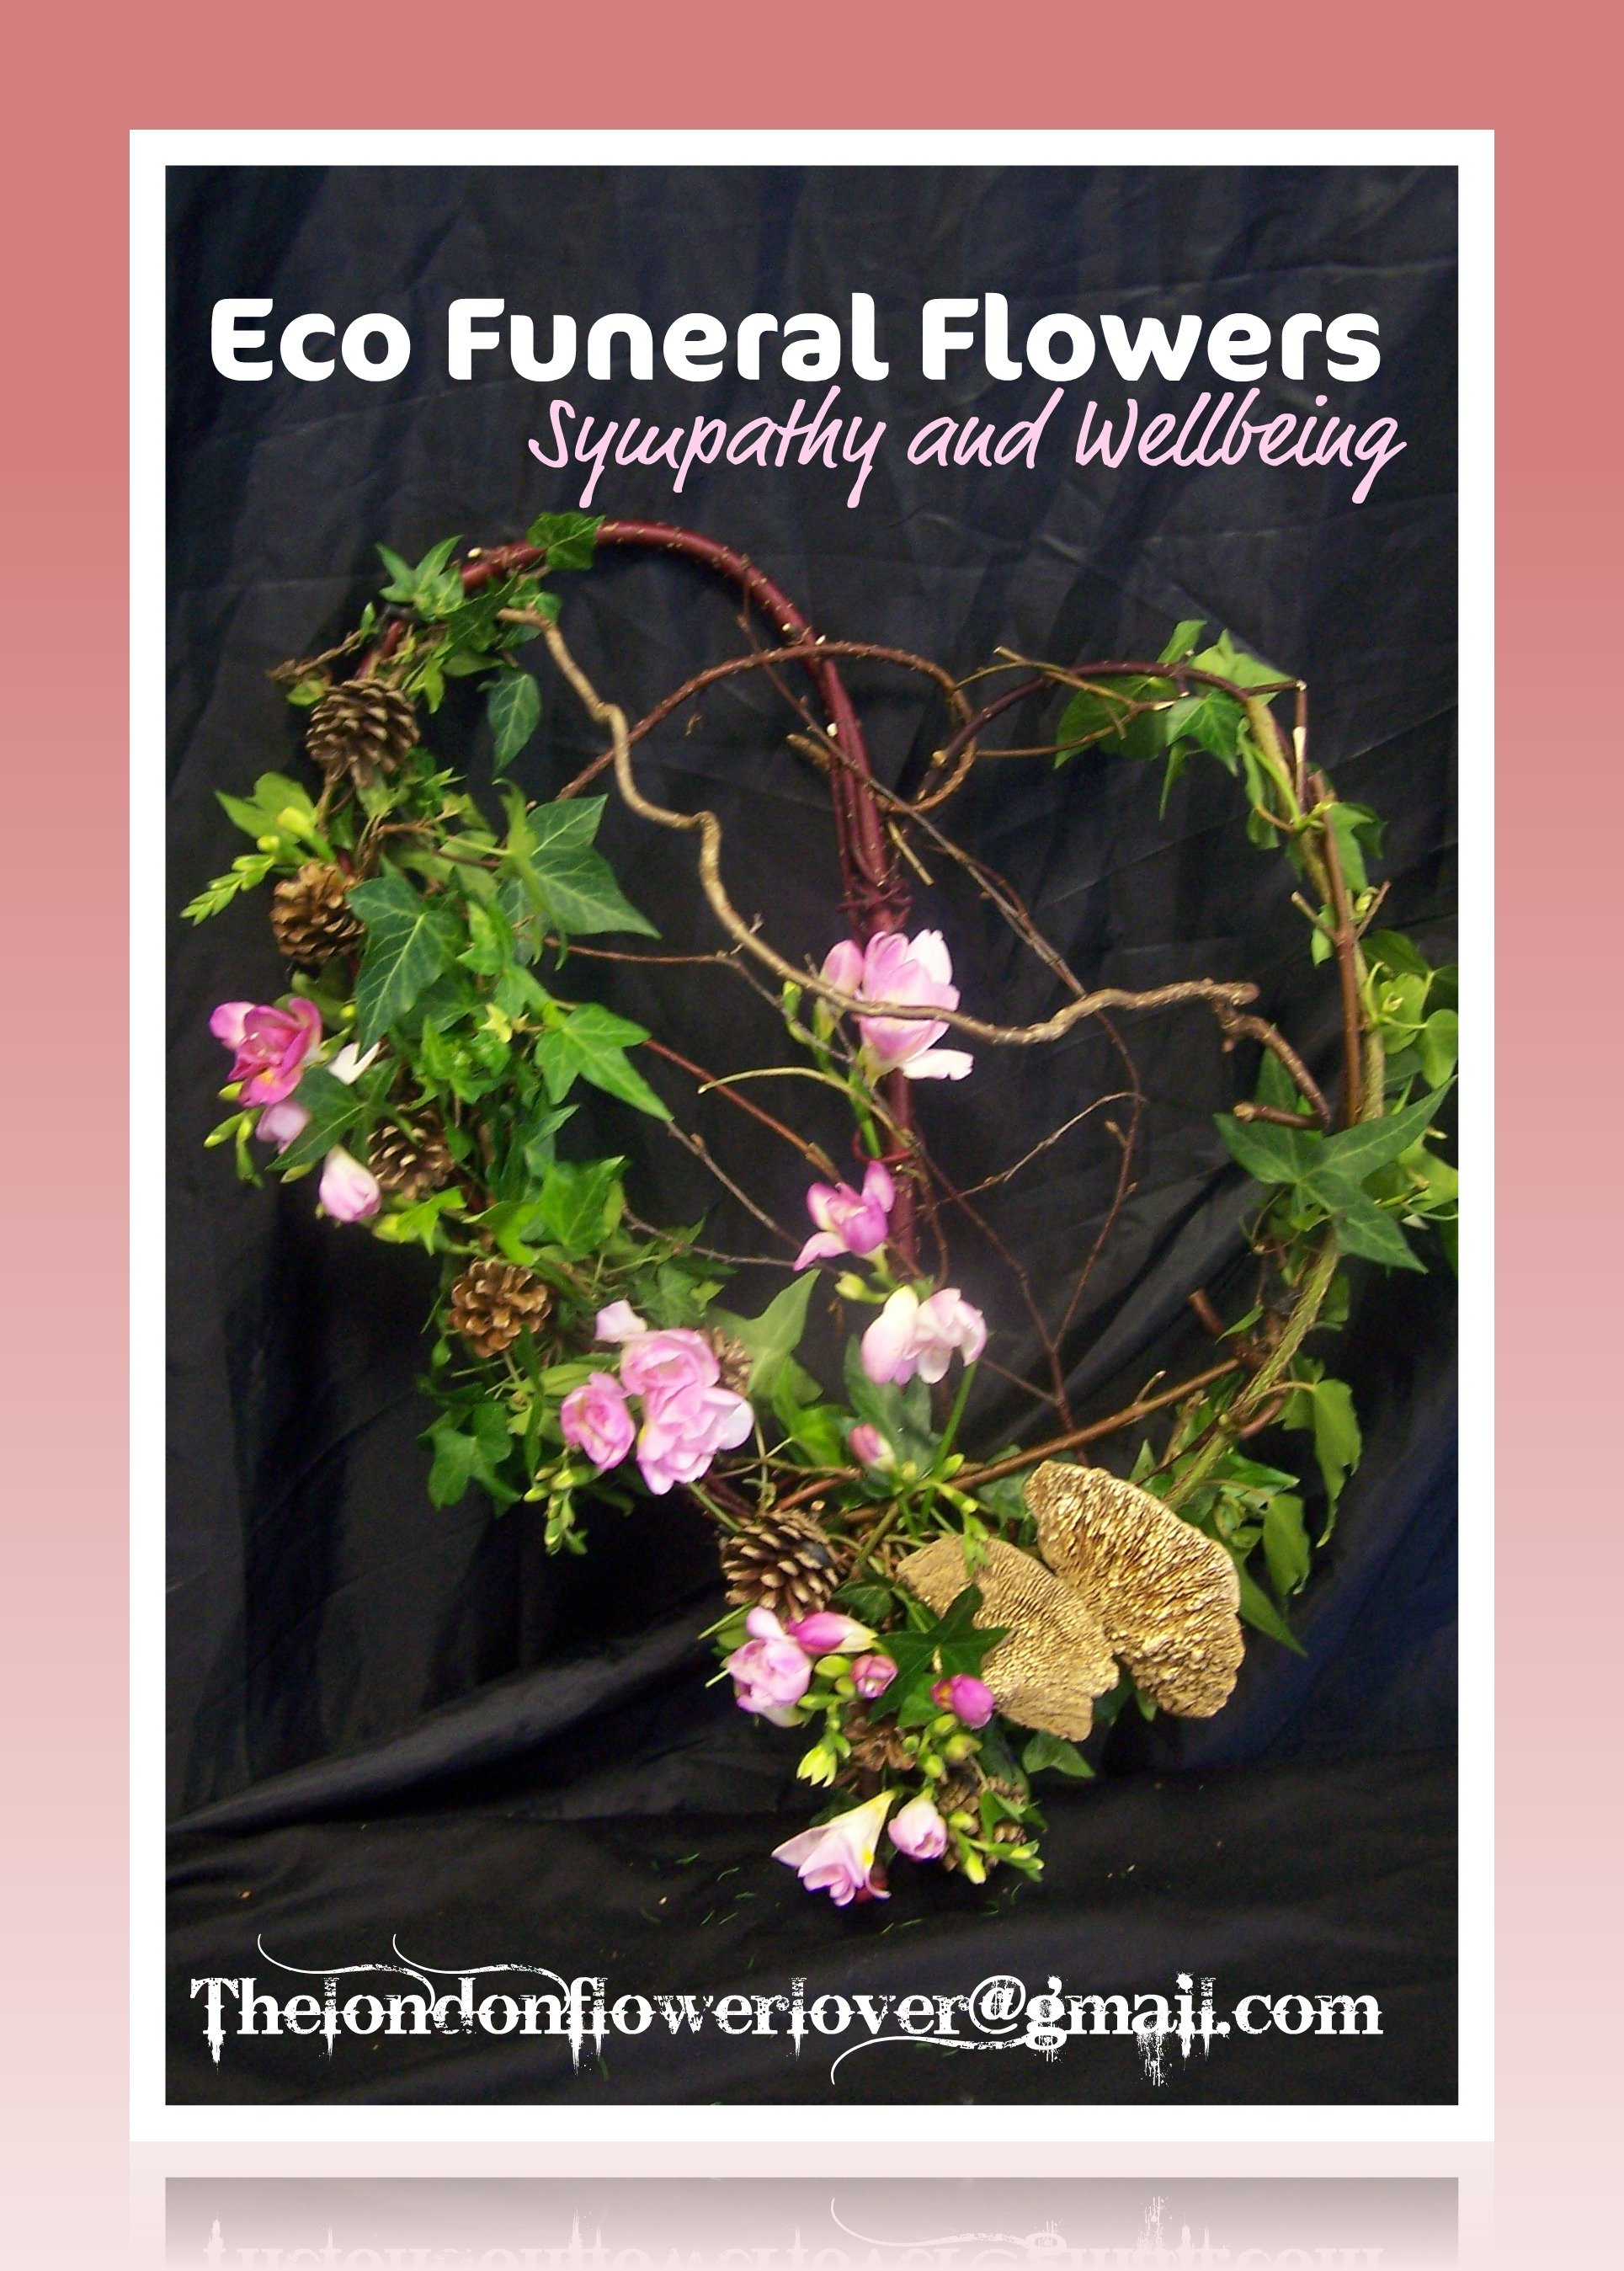 Laughter Happiness and Flowers at this Weeks Funeral